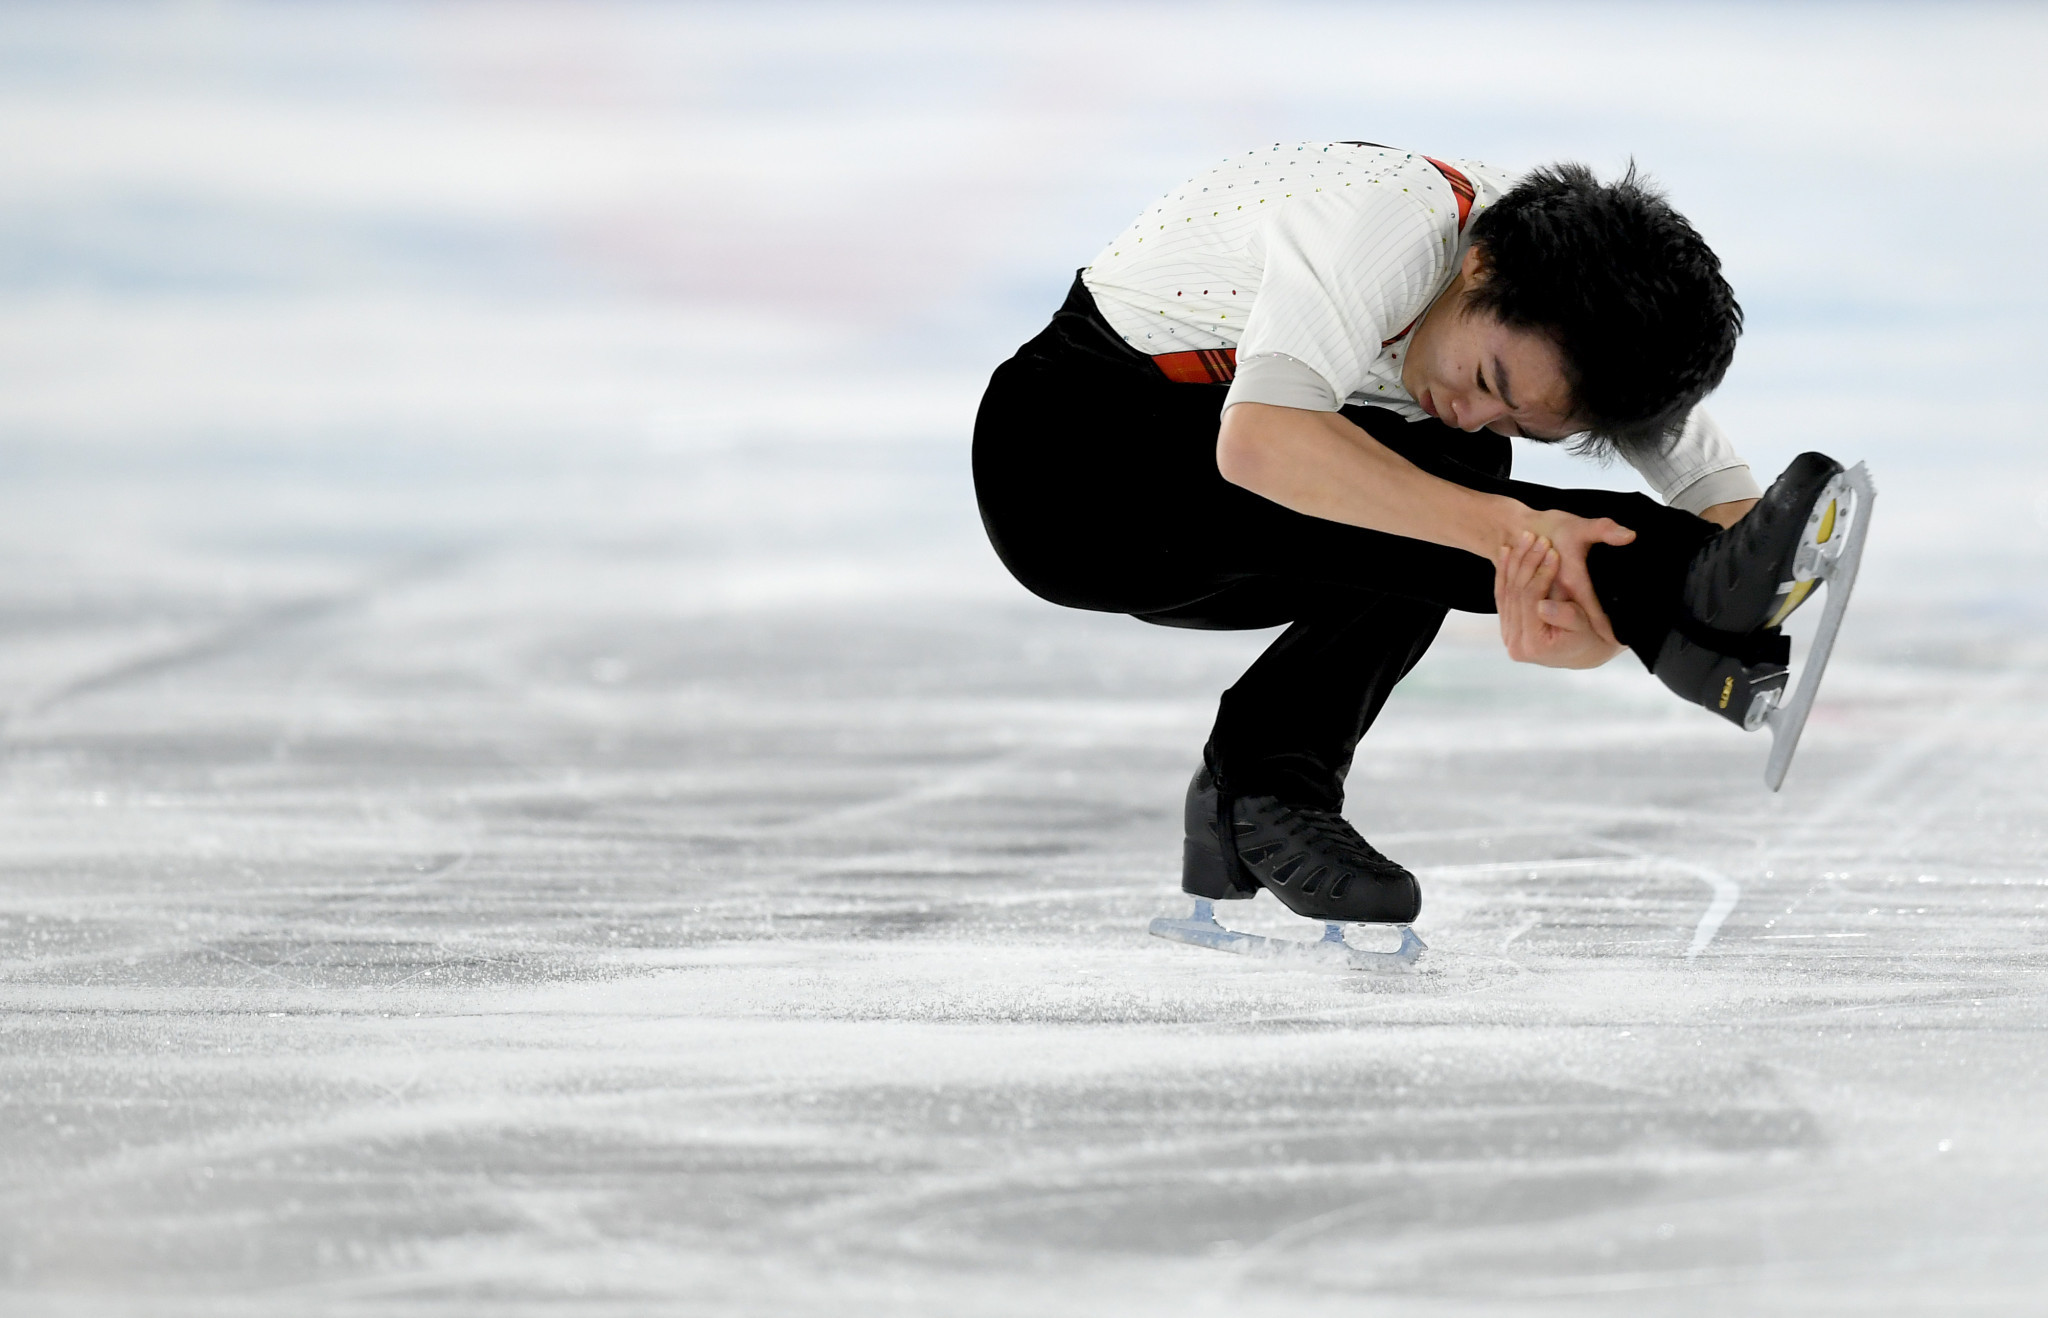 Flawless free programme earns Kagiyama figure skating title at Lausanne 2020